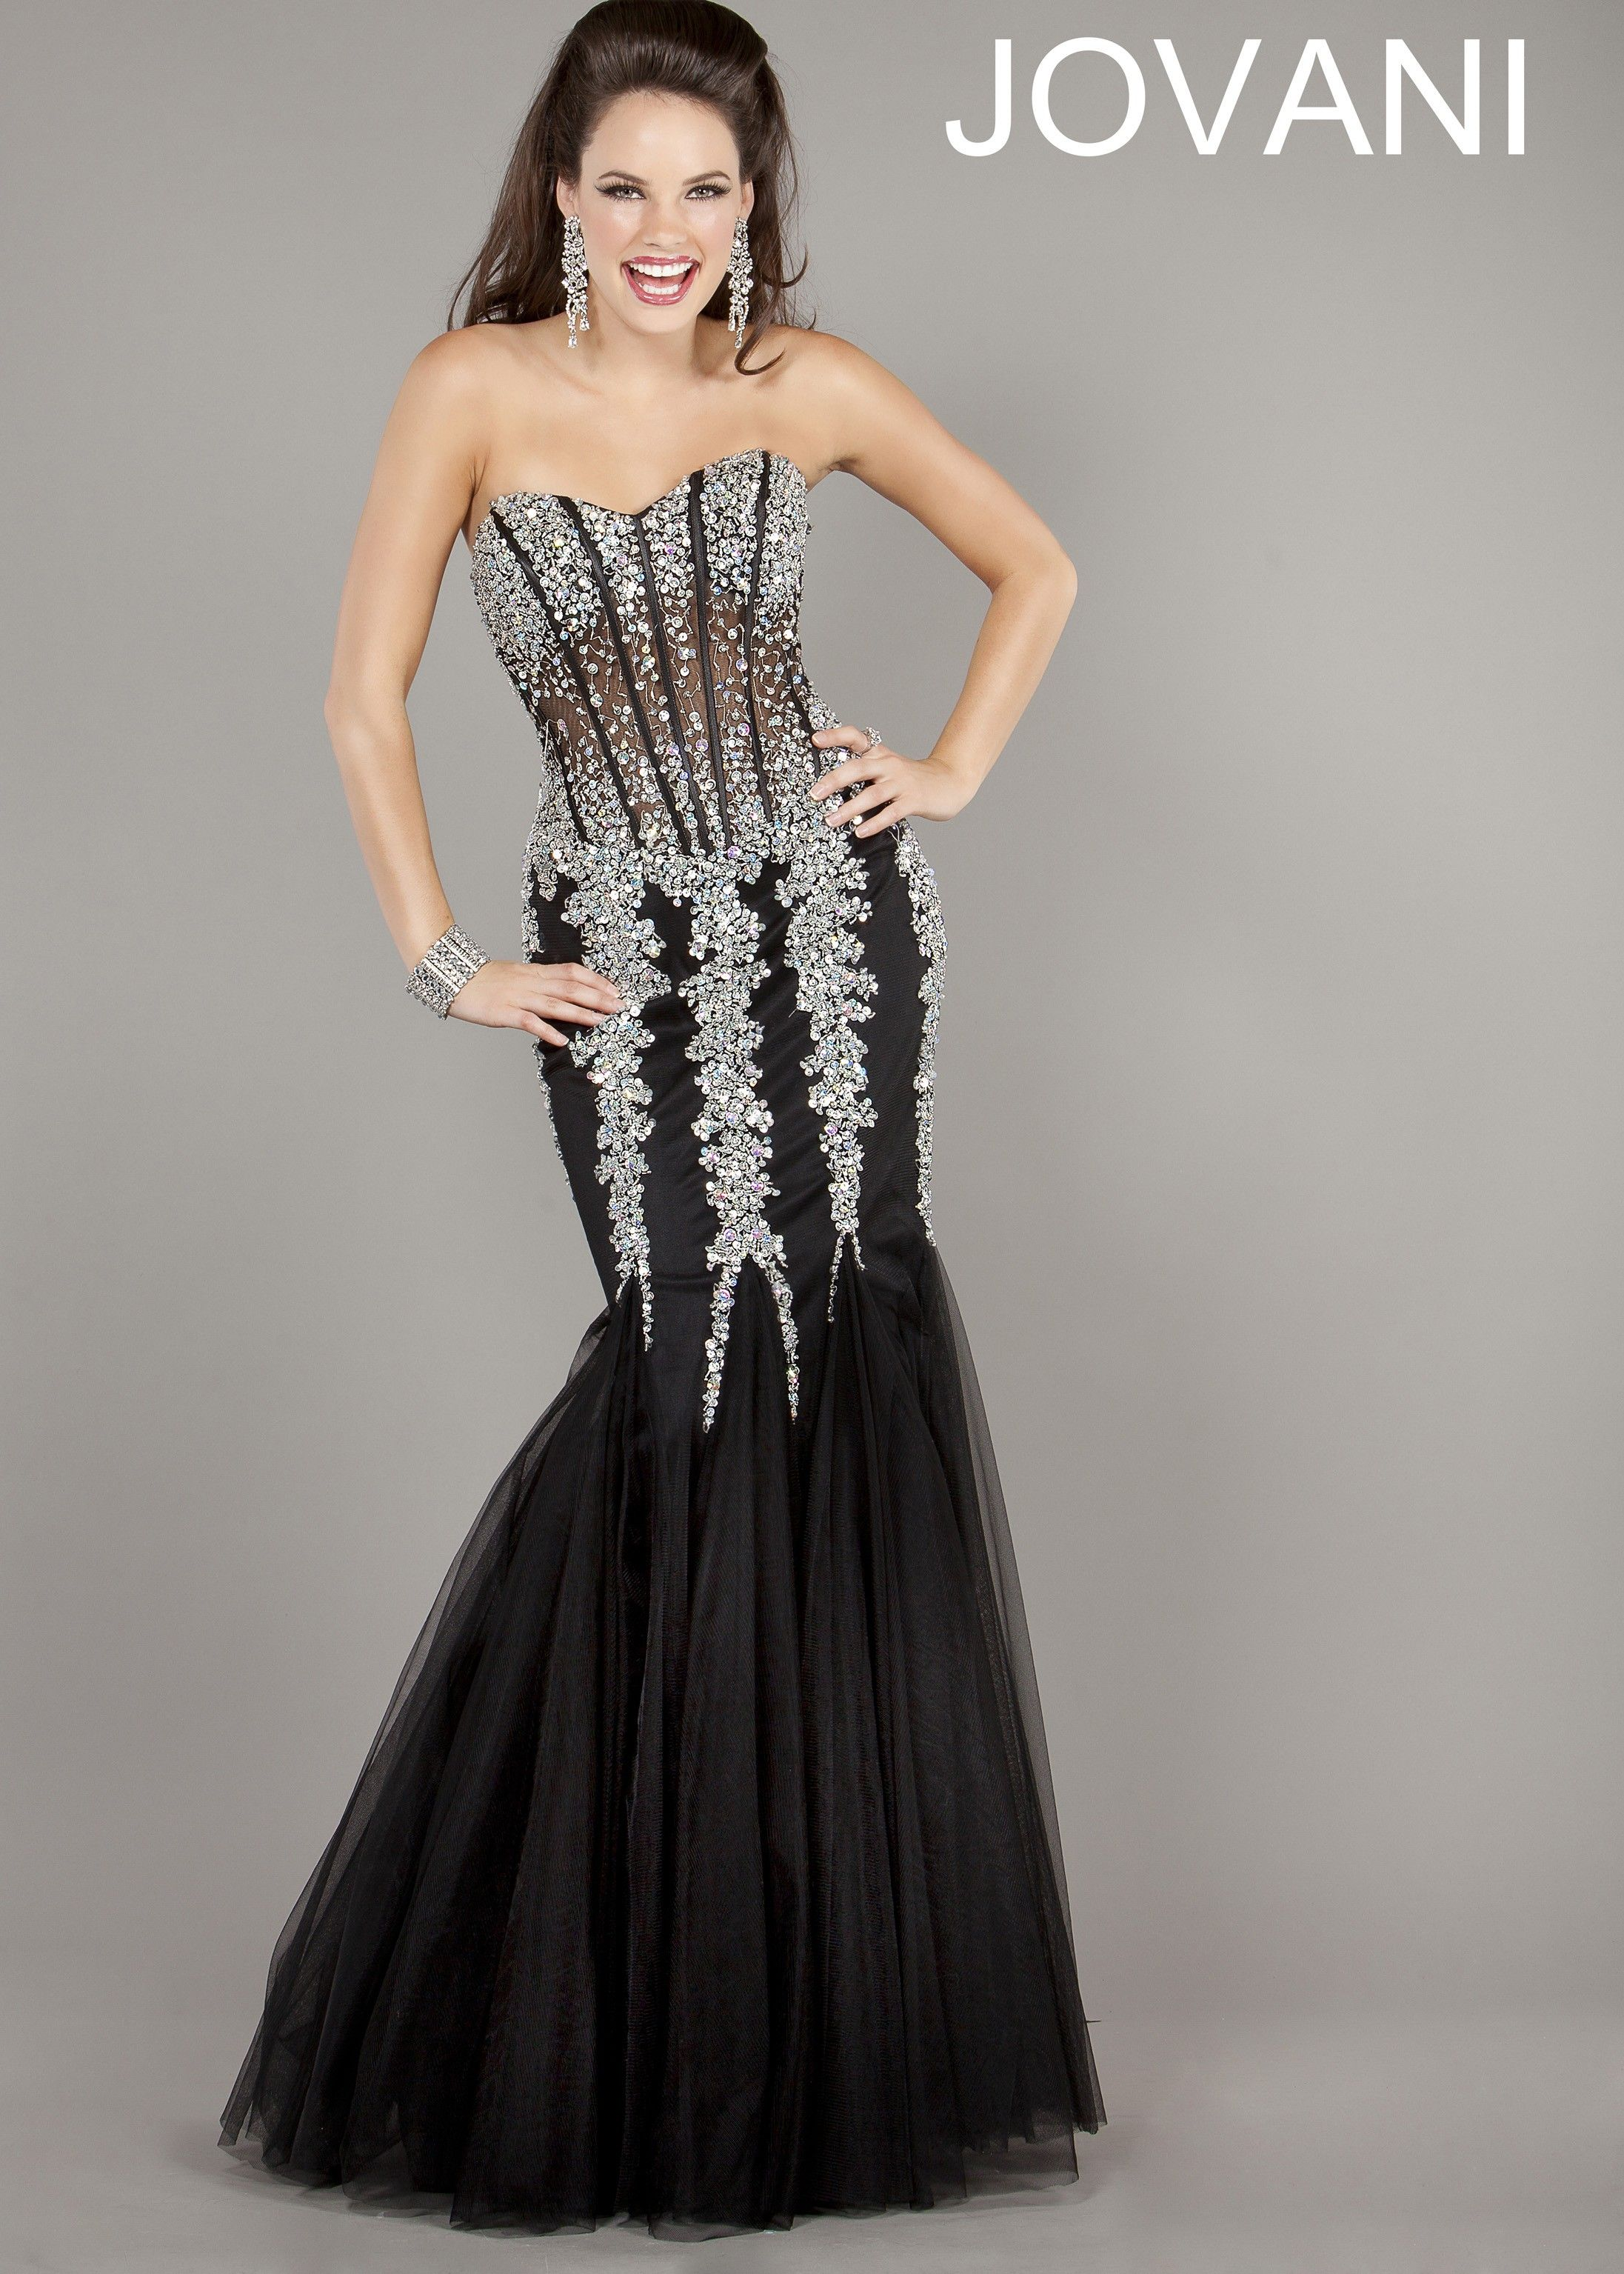 Wedding Black And Silver Dresses jovani 5908 classy mermaids and style dress prom blacksilver